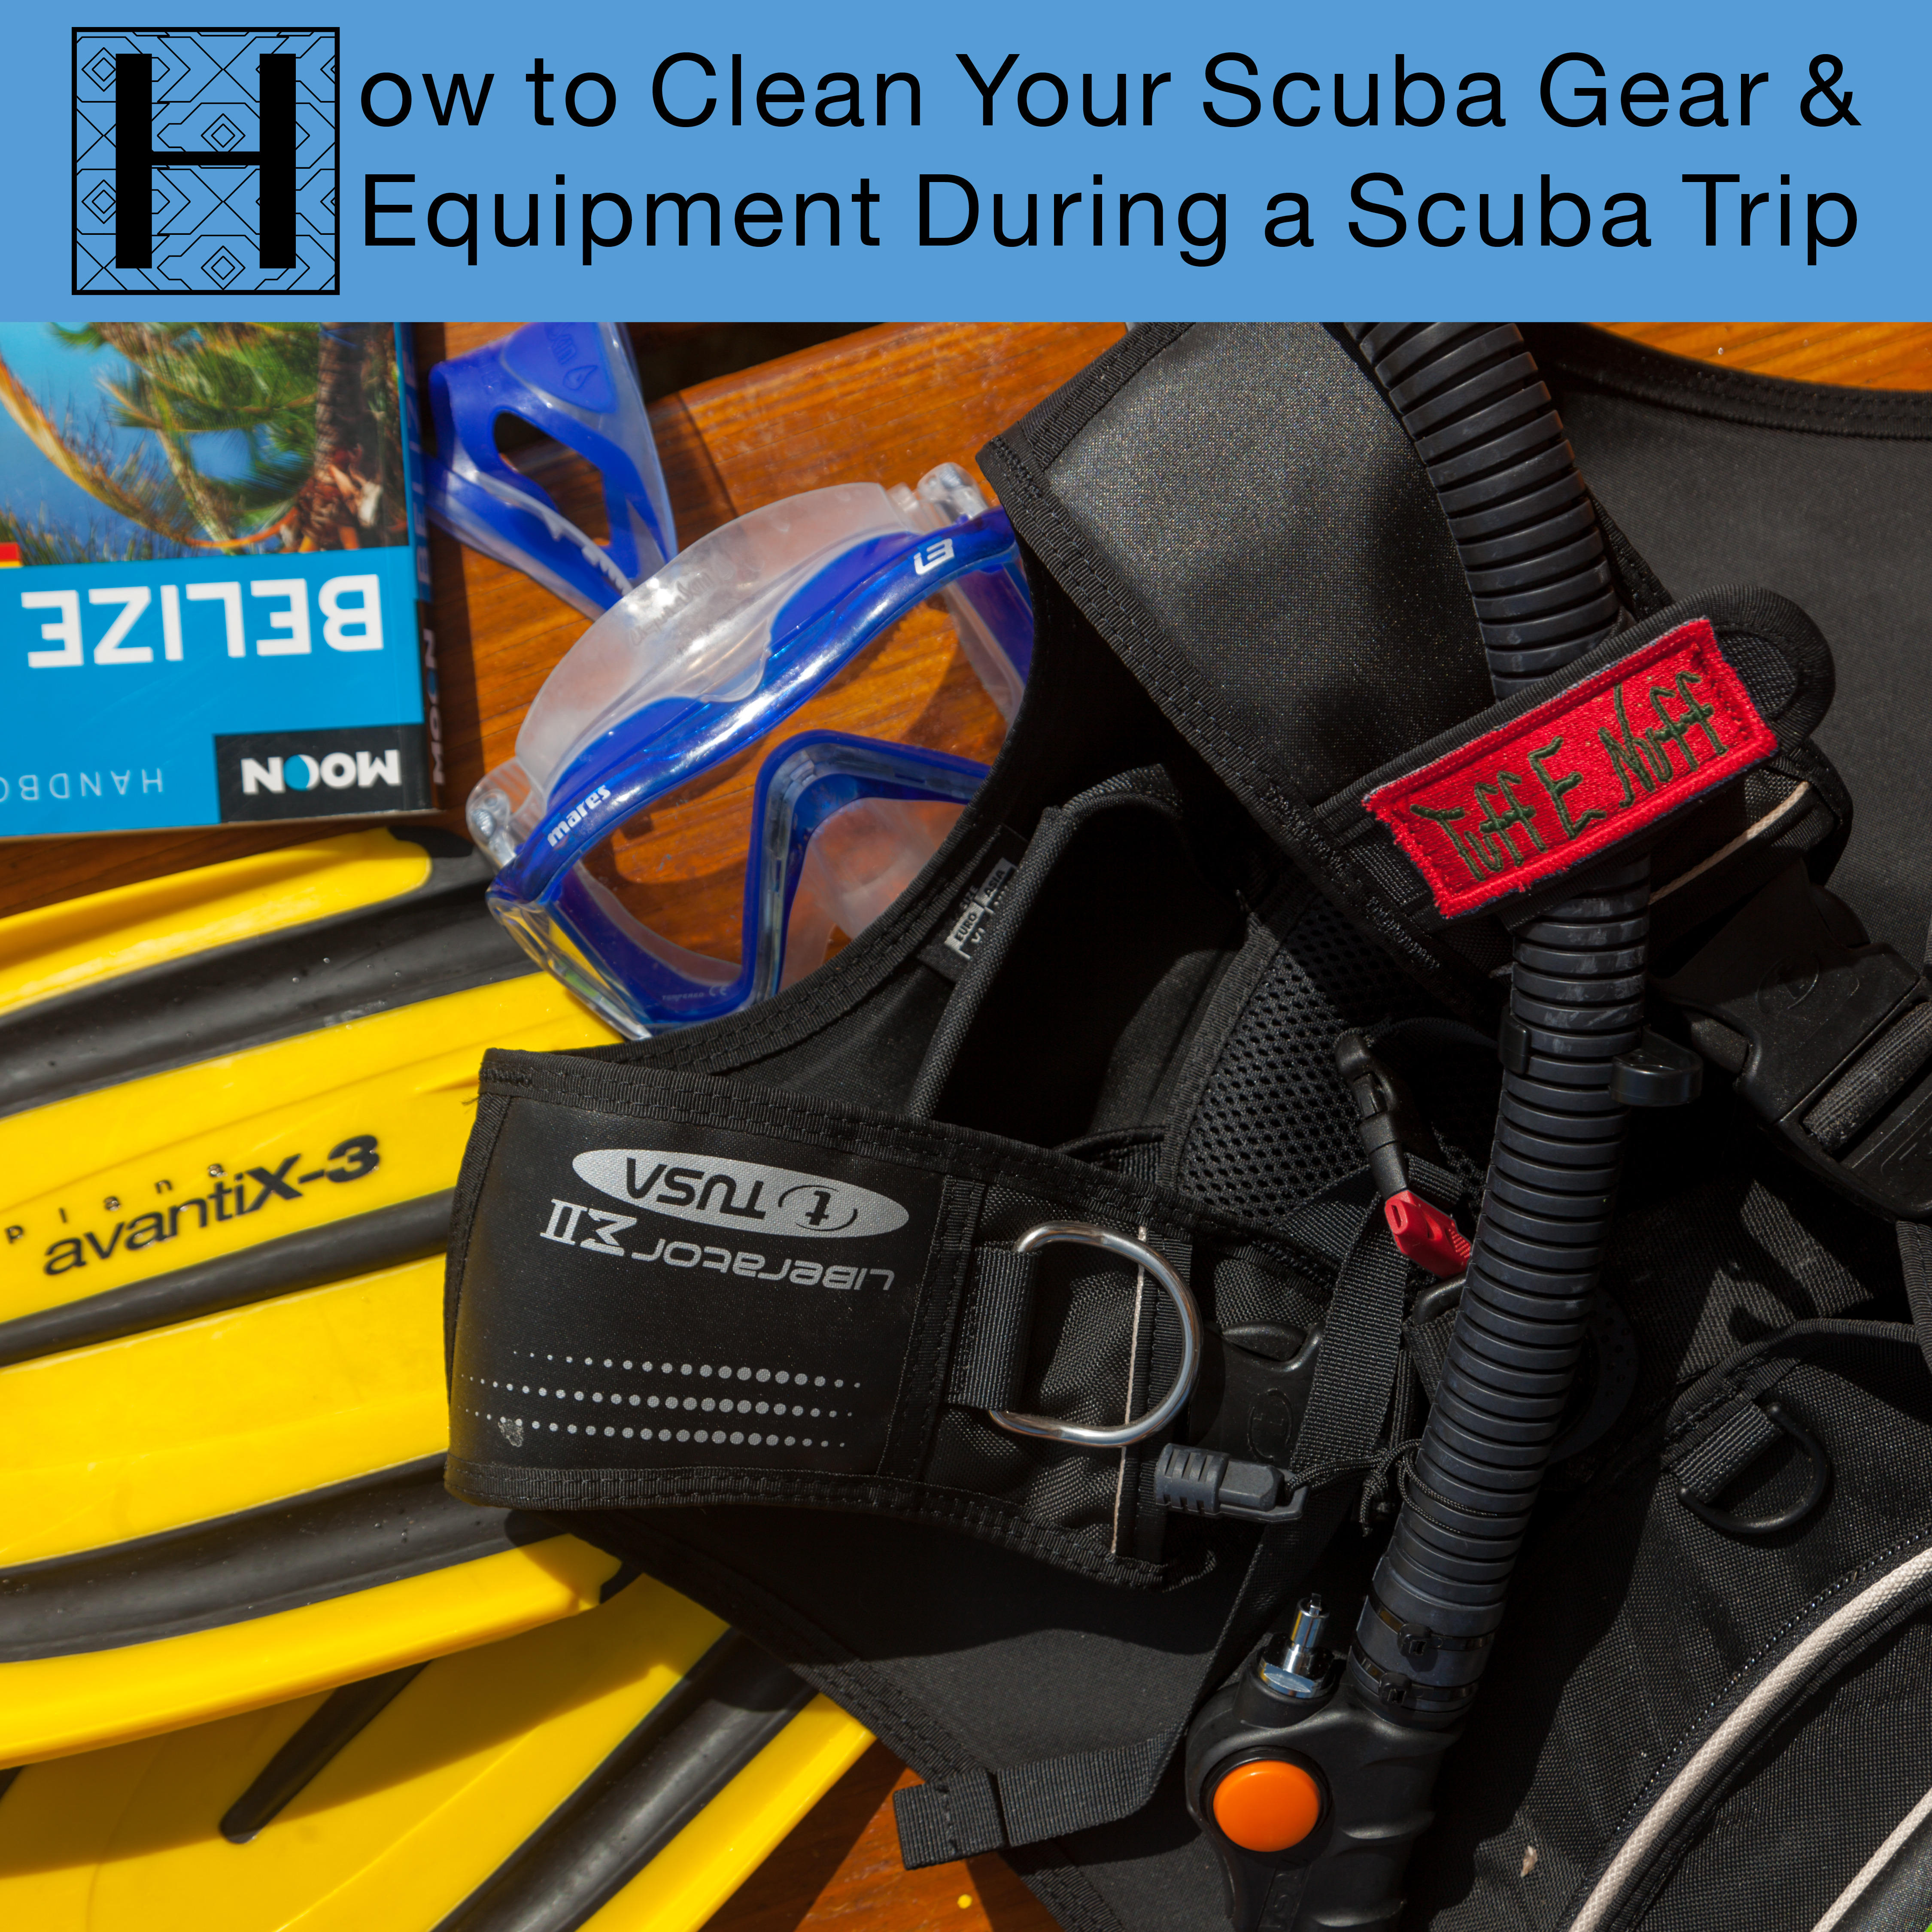 How to clean your scuba gear & Equipment during a scuba trip